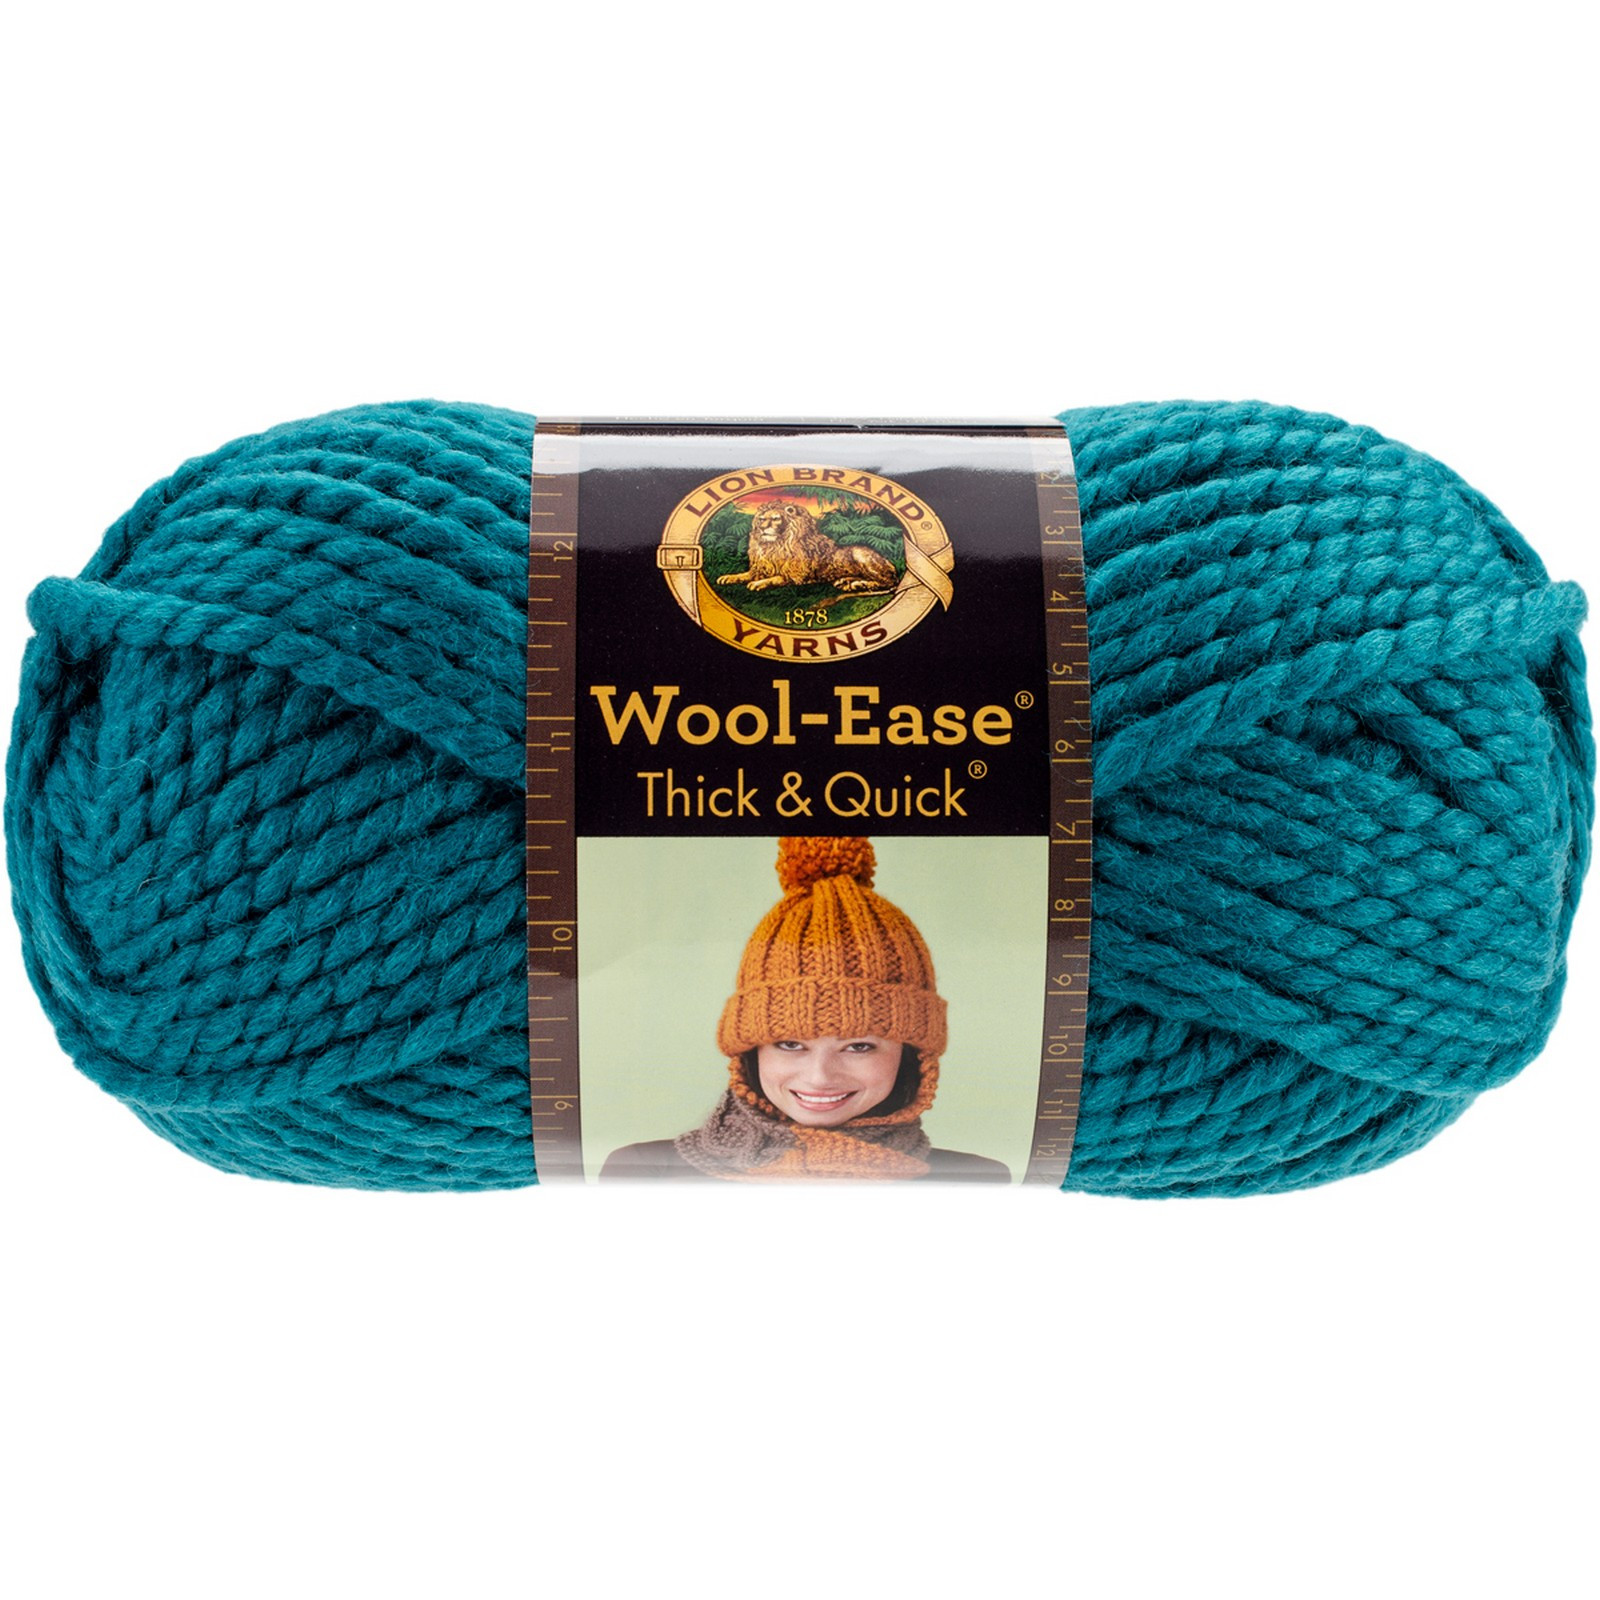 Thick and Quick Yarn Best Of Wool Ease Thick & Quick Yarn Peacock Of Amazing 45 Images Thick and Quick Yarn